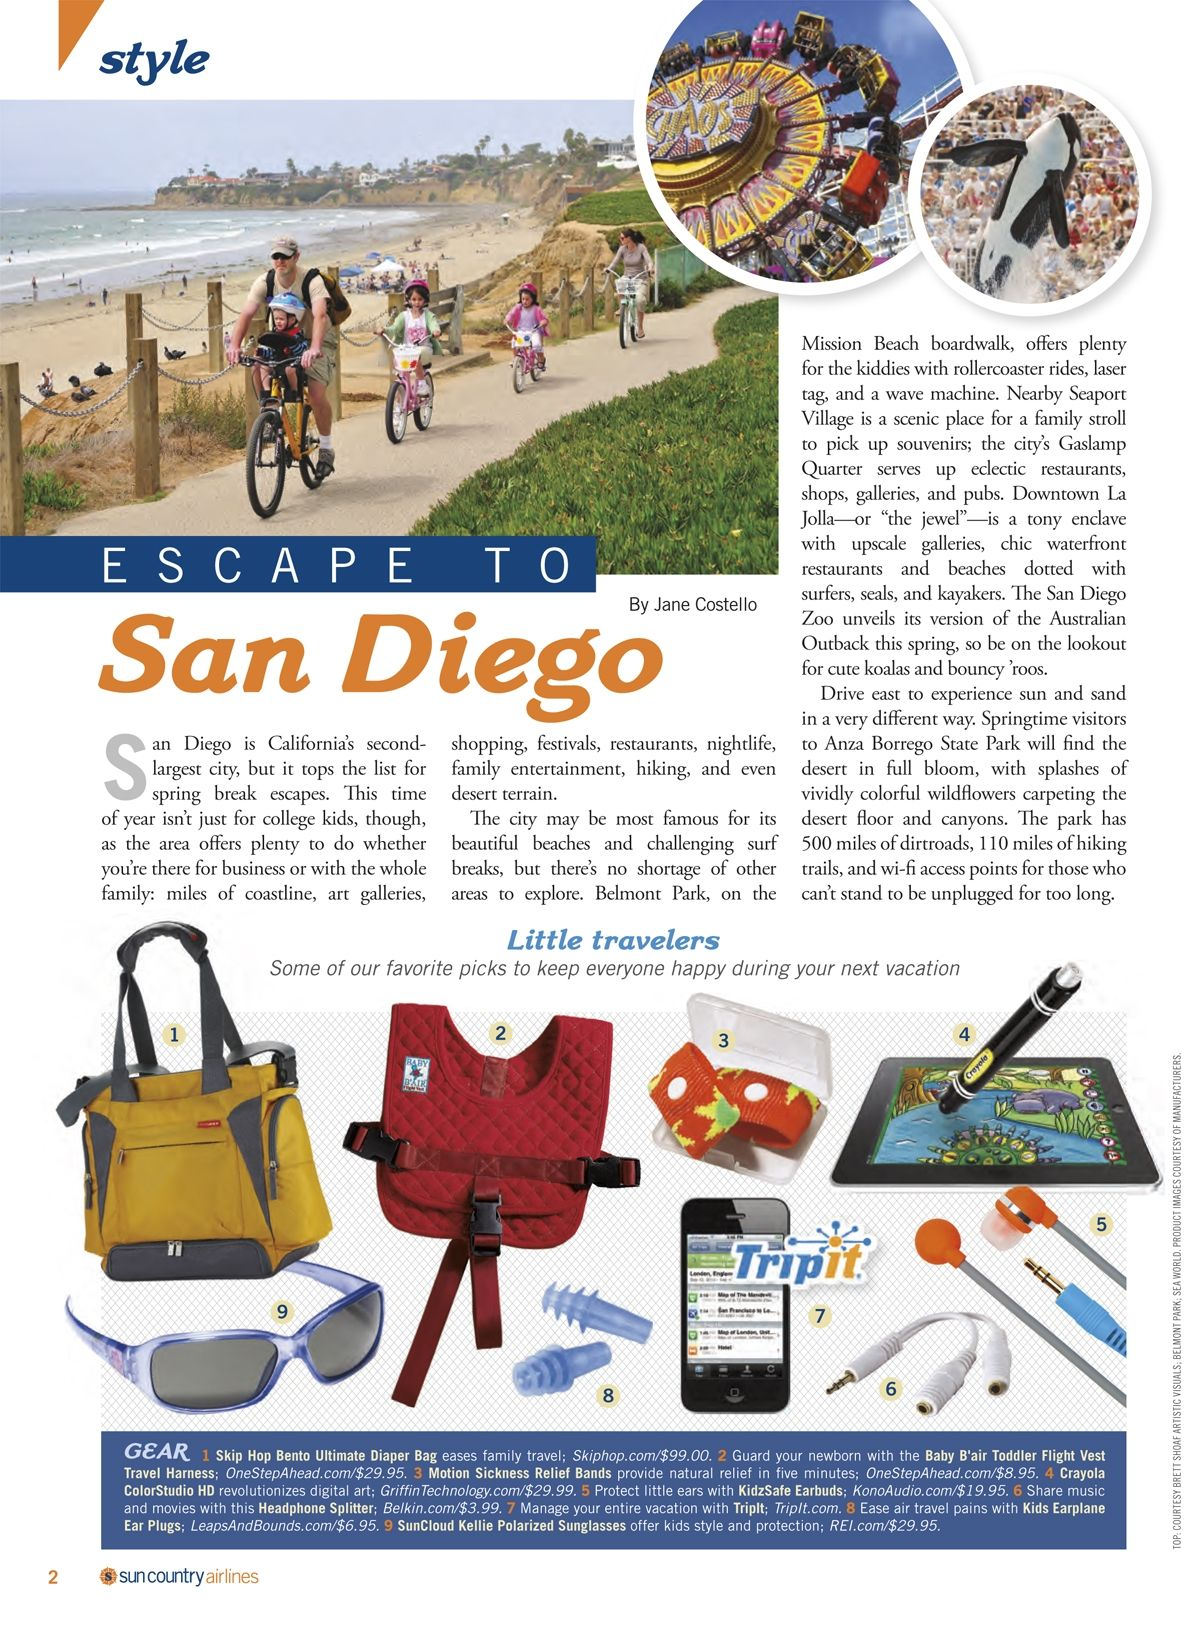 "Sun Country Airlines' In-Flight Magazine's ""Escape to San Diego article"" features a ""Little Travelers"" section that touts our Toddler Flight Vest & Travel Harness and PSI Motion Sickness Bands and Earplugs as ""some of [their] favorite picks to keep everyone happy during your next vacation!"""